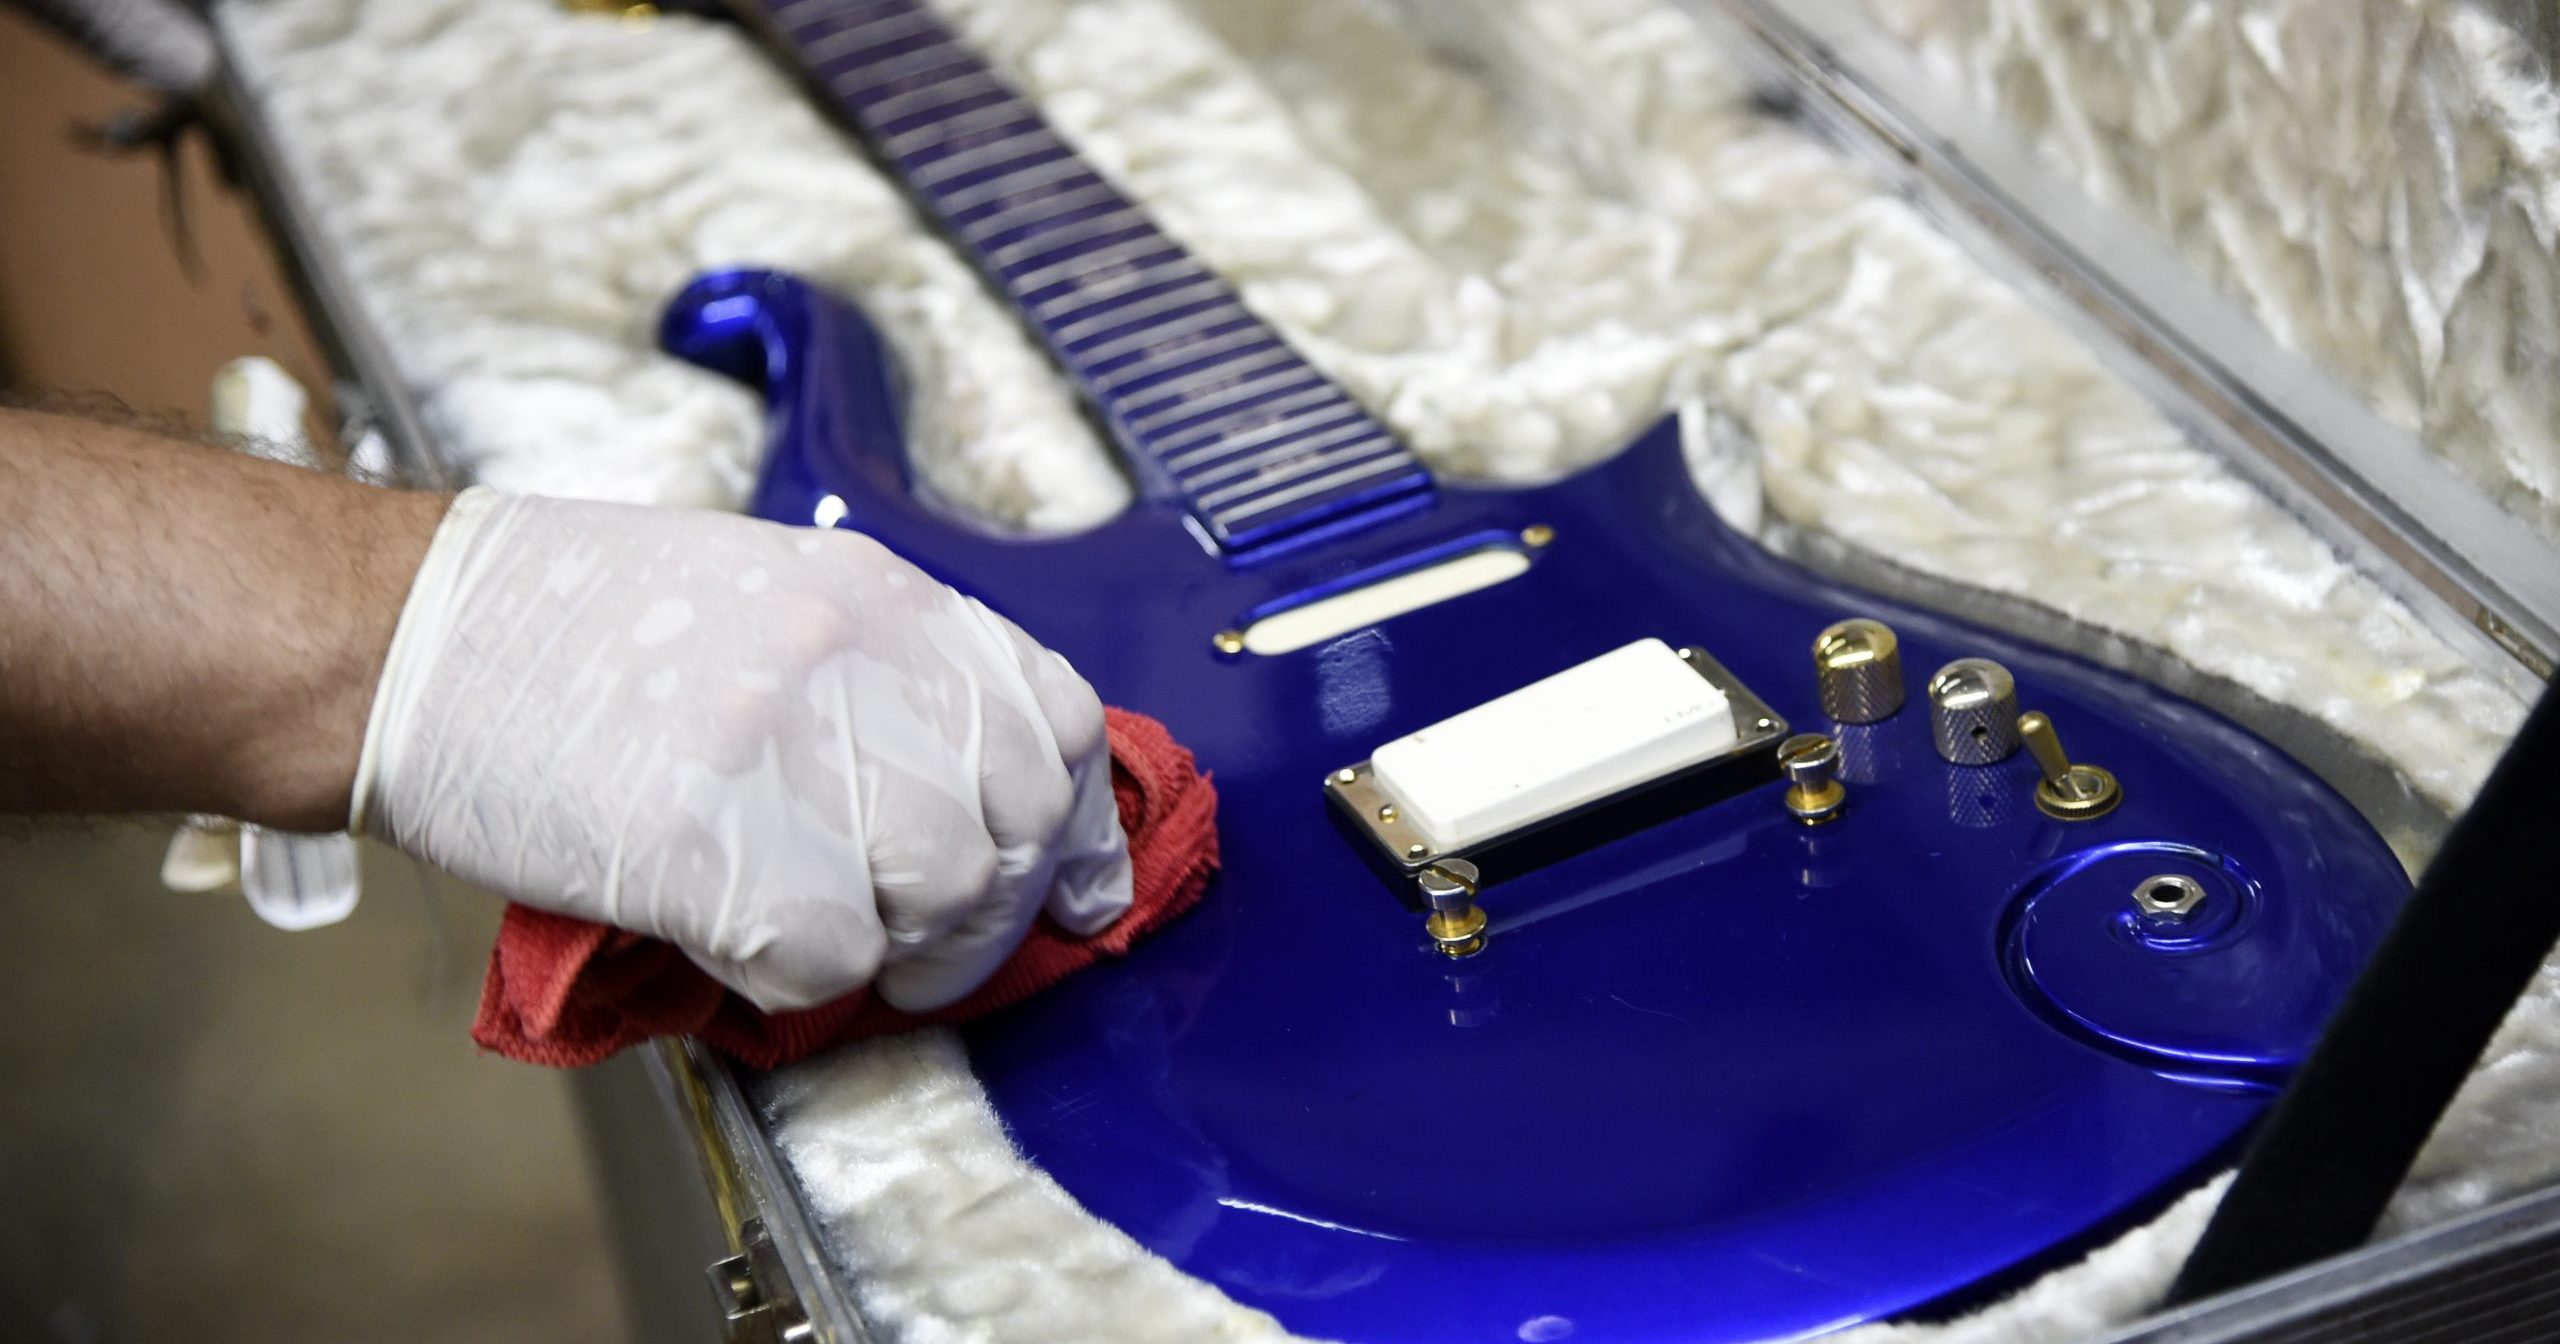 """In this May 6, 2020, file photo, the """"Blue Angel"""" Cloud 2 electric guitar custom-made for the musician Prince in the 1980s is polished at Julien's Auctions warehouse in Culver City, California. On June 19, 2020, the instrument shot past the top estimate of $200,000 it was expected to fetch at the Music Icons sale at the auction house."""